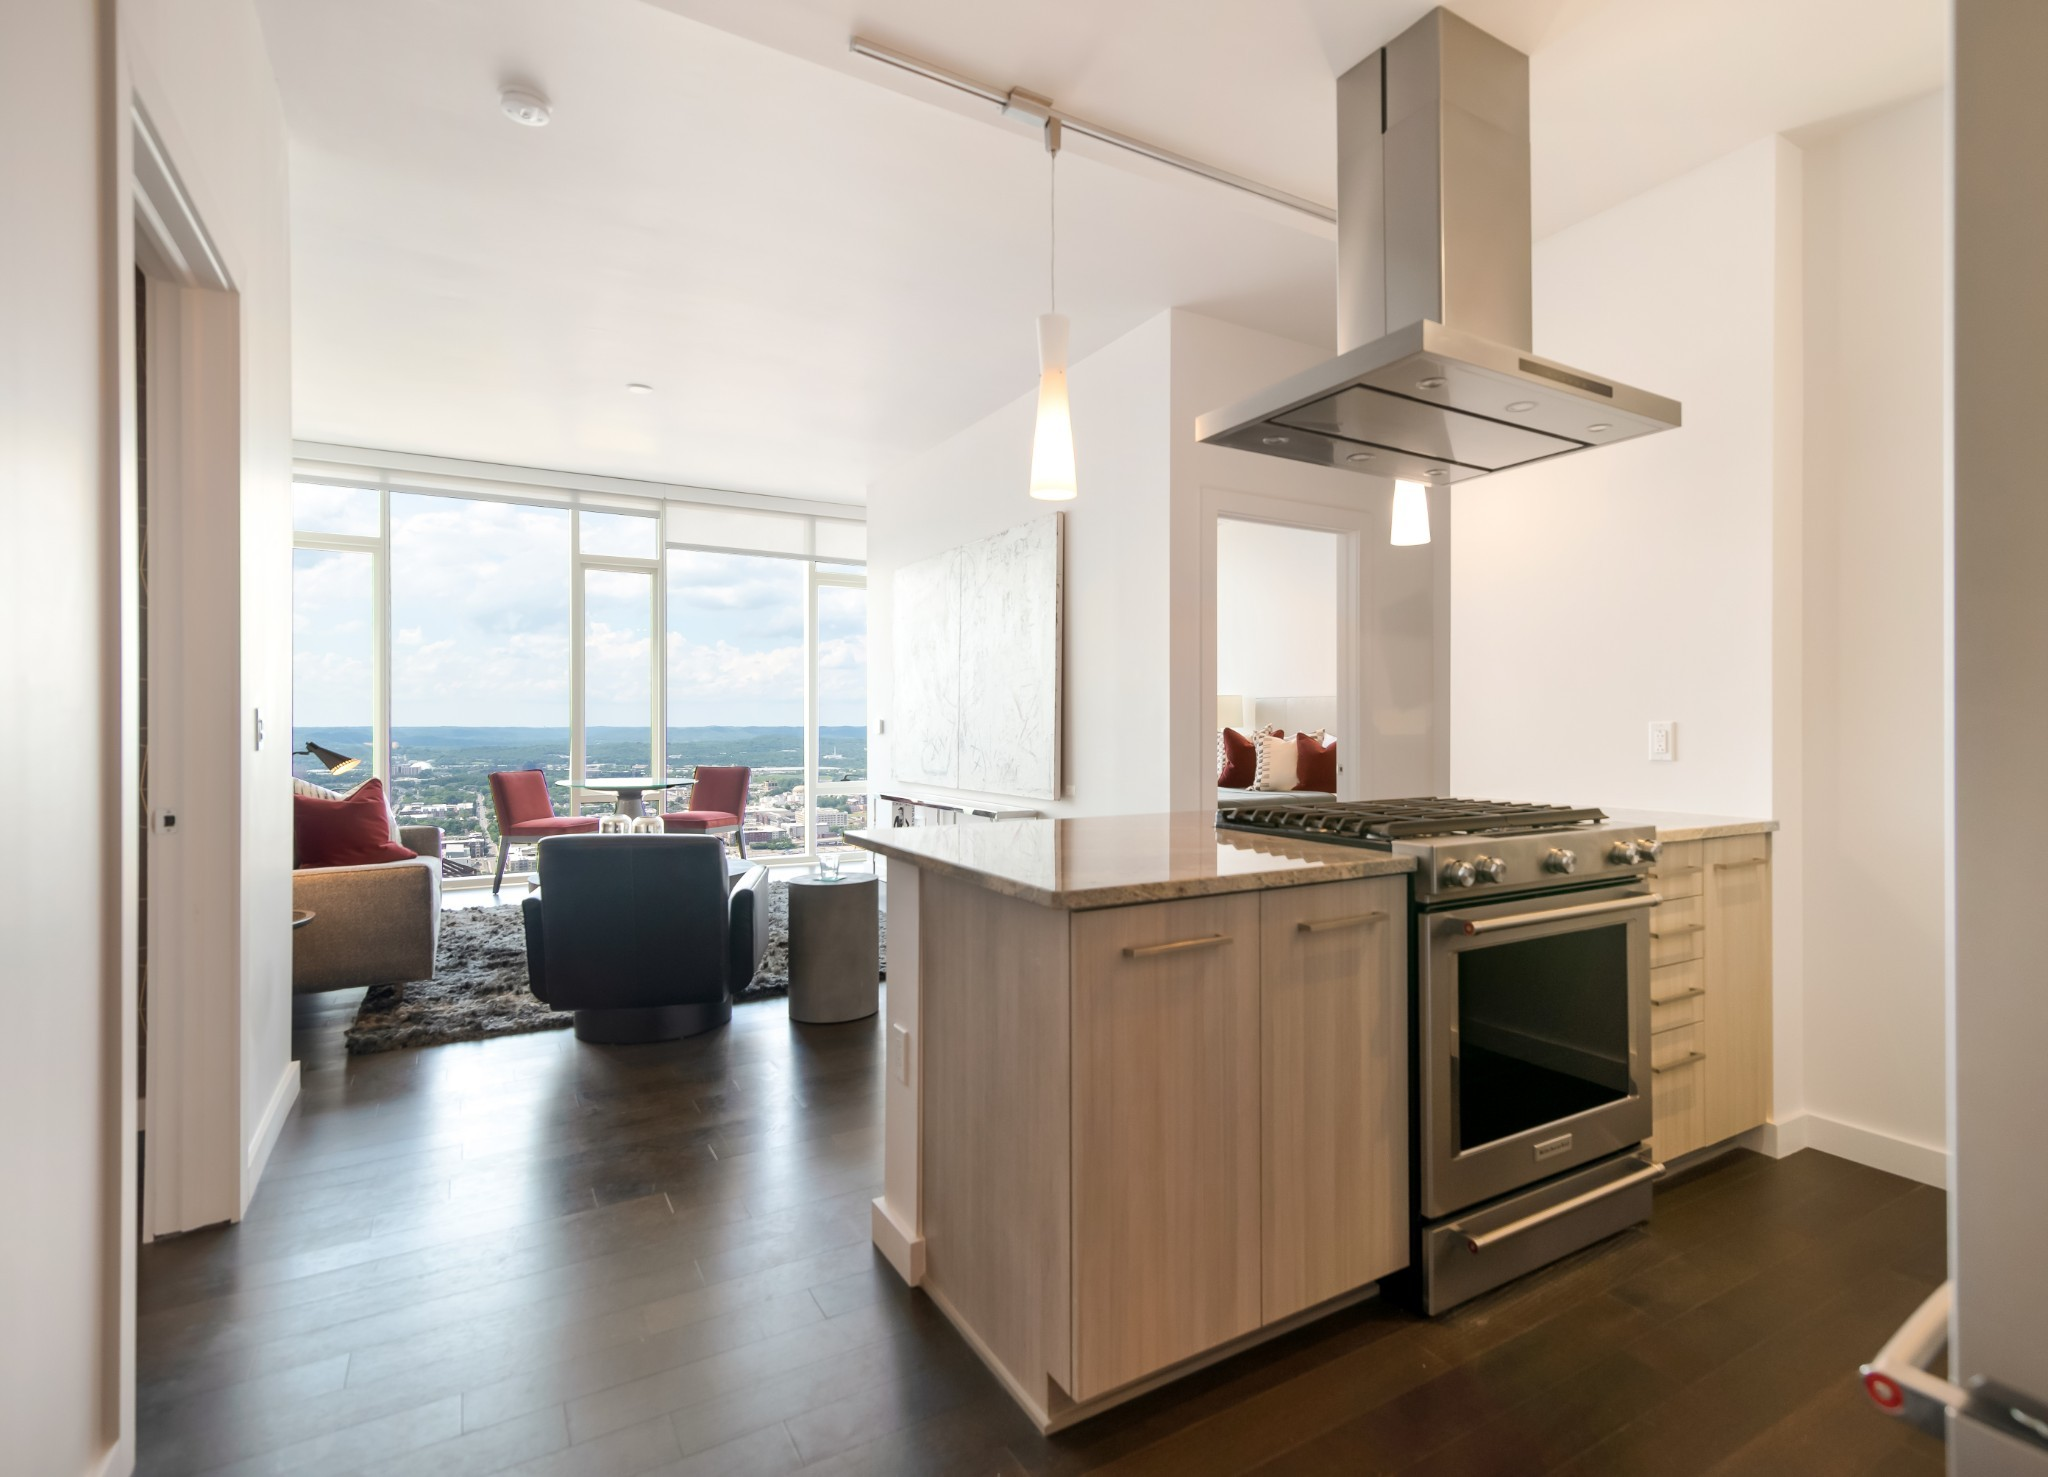 Modern elegance and timeless sophistication at the unparalleled 505 high-rise. Beautifully appointed 2-BR with breathtaking wall-to-wall views of Nashville's iconic skyline and distant hilltops. Resort-style pool, cabanas, tennis, Technogym fitness center, dog park. Exclusive owners-only wine cellar, lounge, dining room with catering kitchen and fitness room. Located in the epicenter of all downtown activities. Walk to music, theater, sports and restaurants.